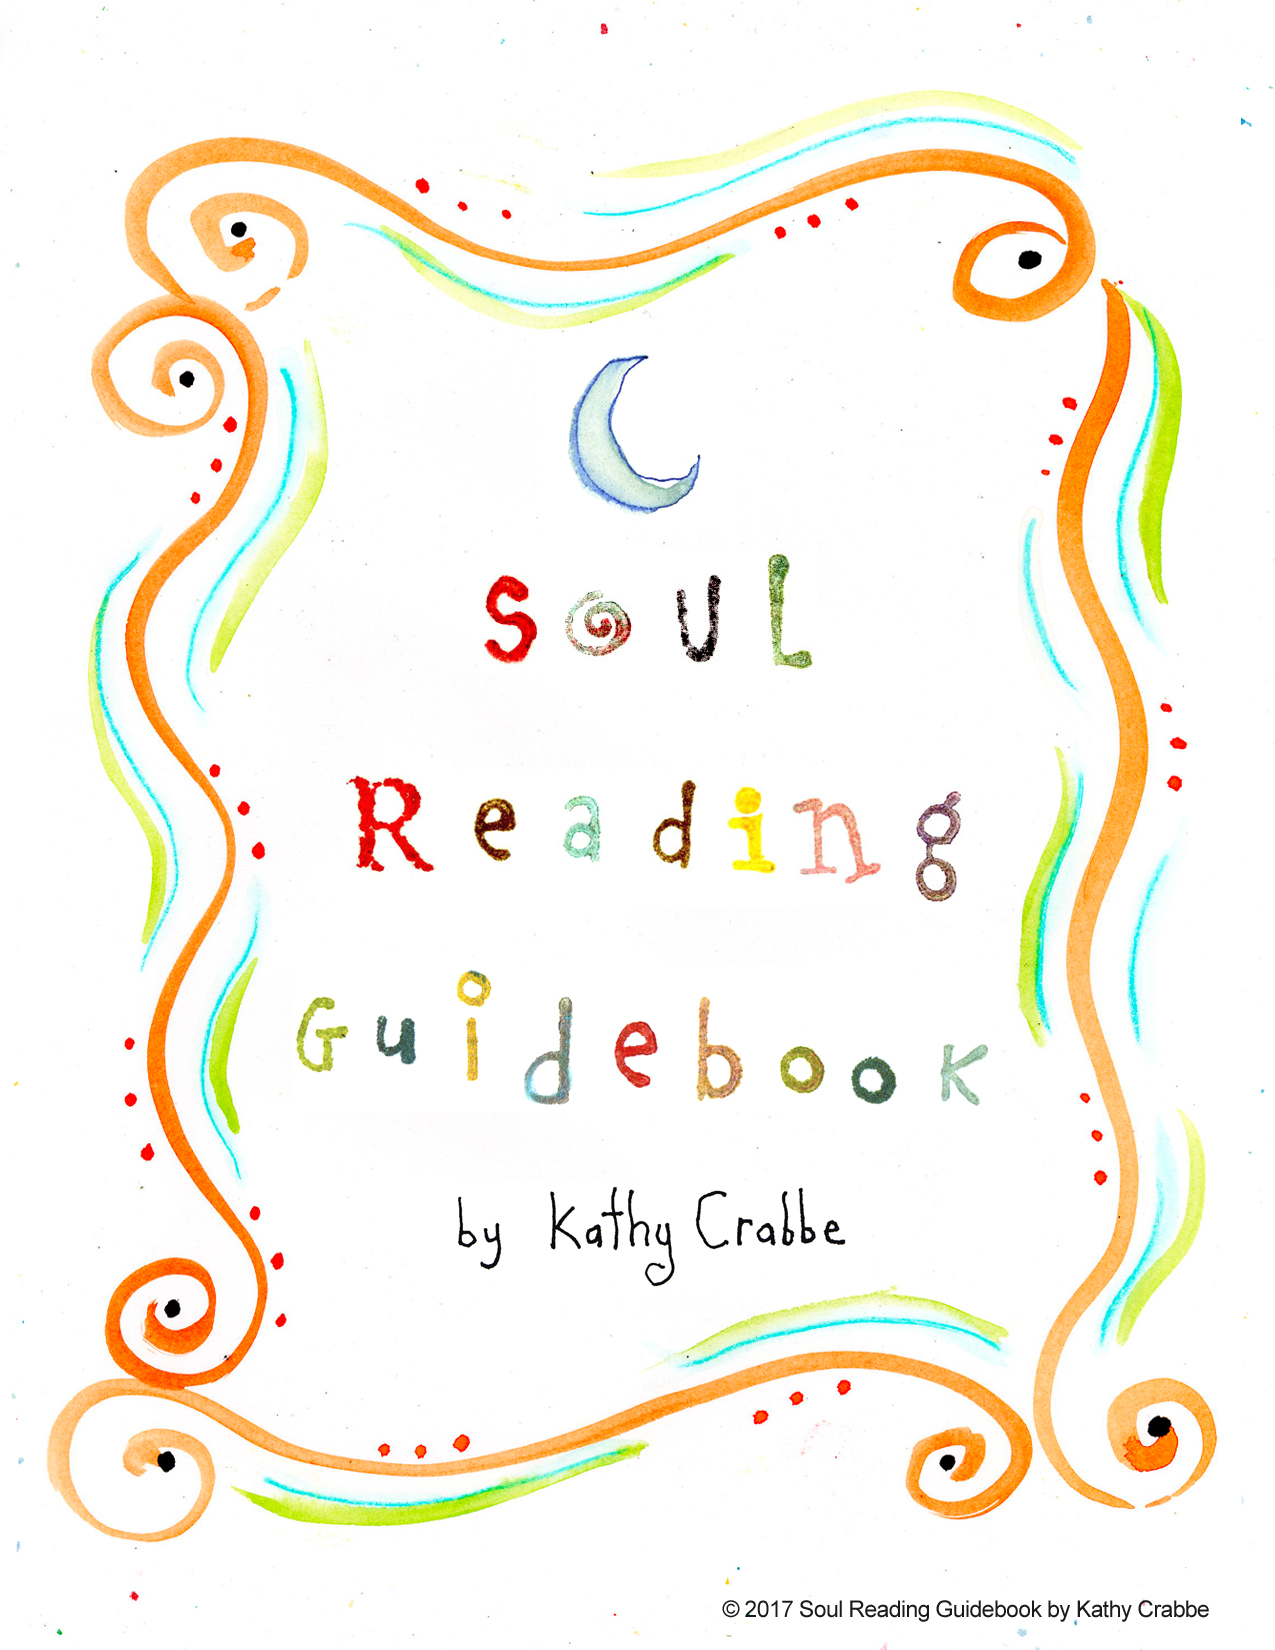 Soul Reading Guidebook by Kathy Crabbe